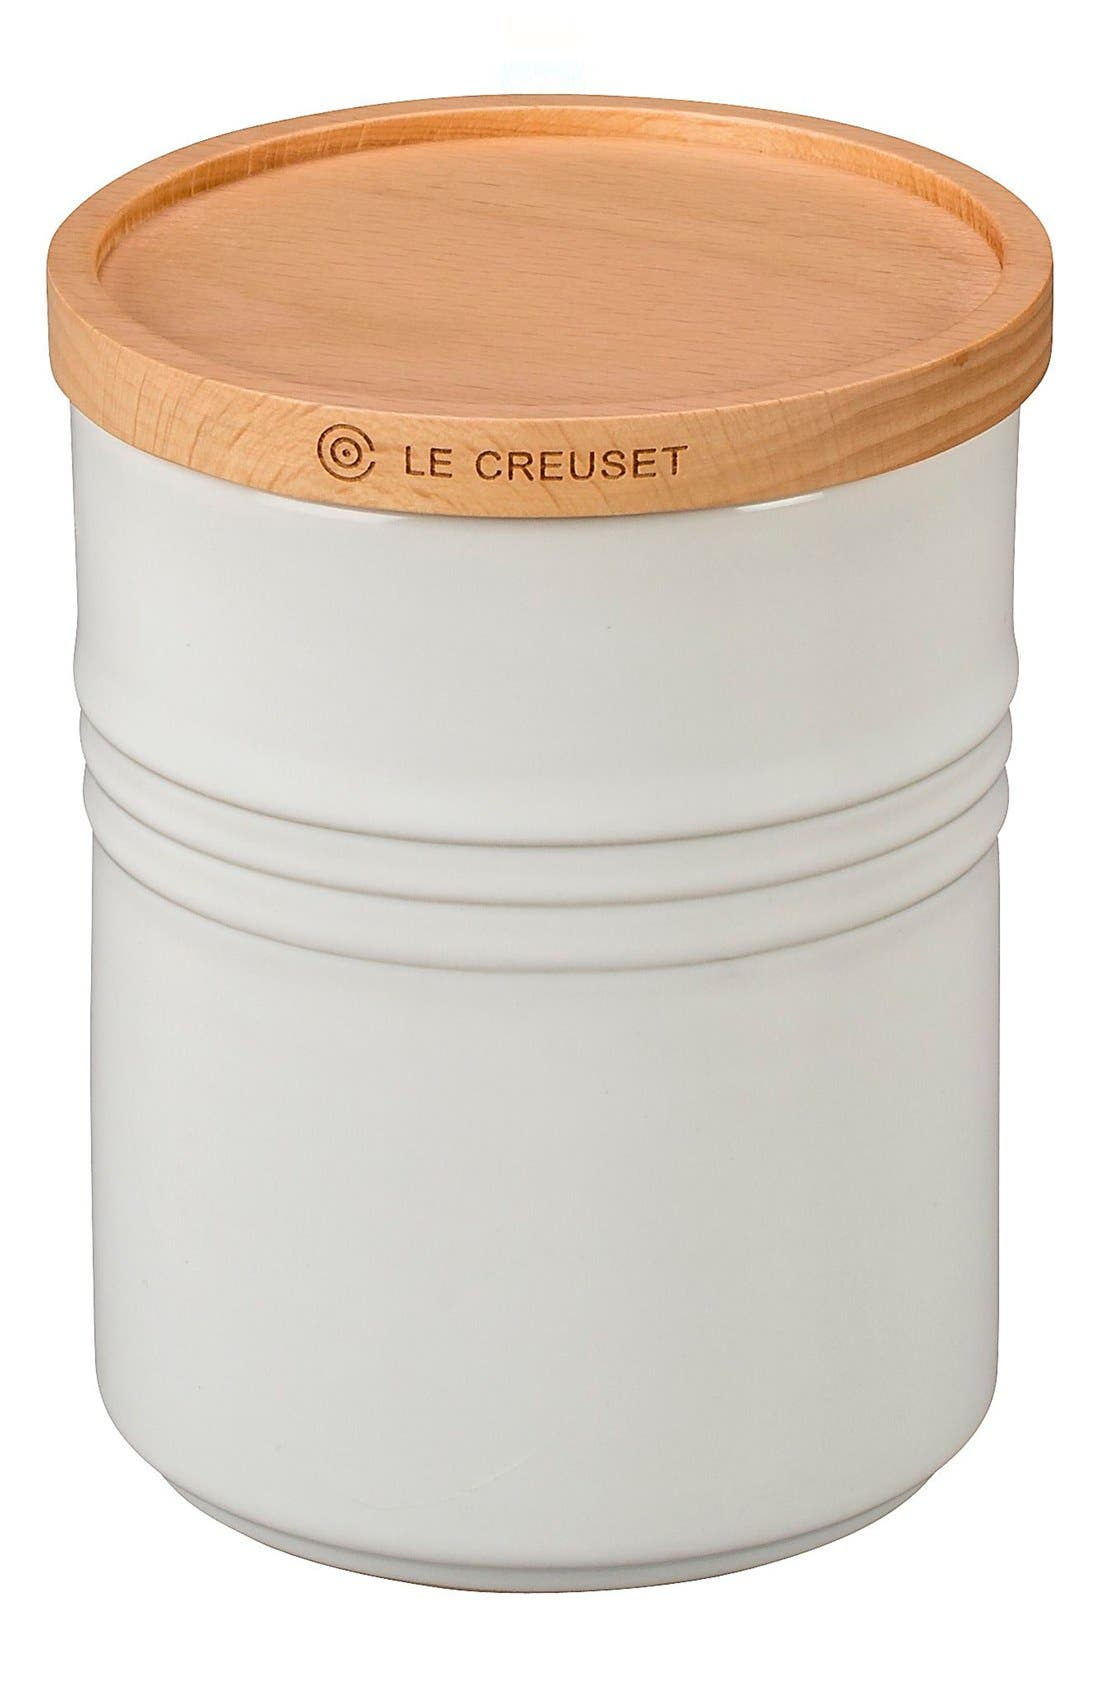 Glazed Stoneware 2 1/2 Quart Storage Canister with Wooden Lid,                             Main thumbnail 1, color,                             WHITE